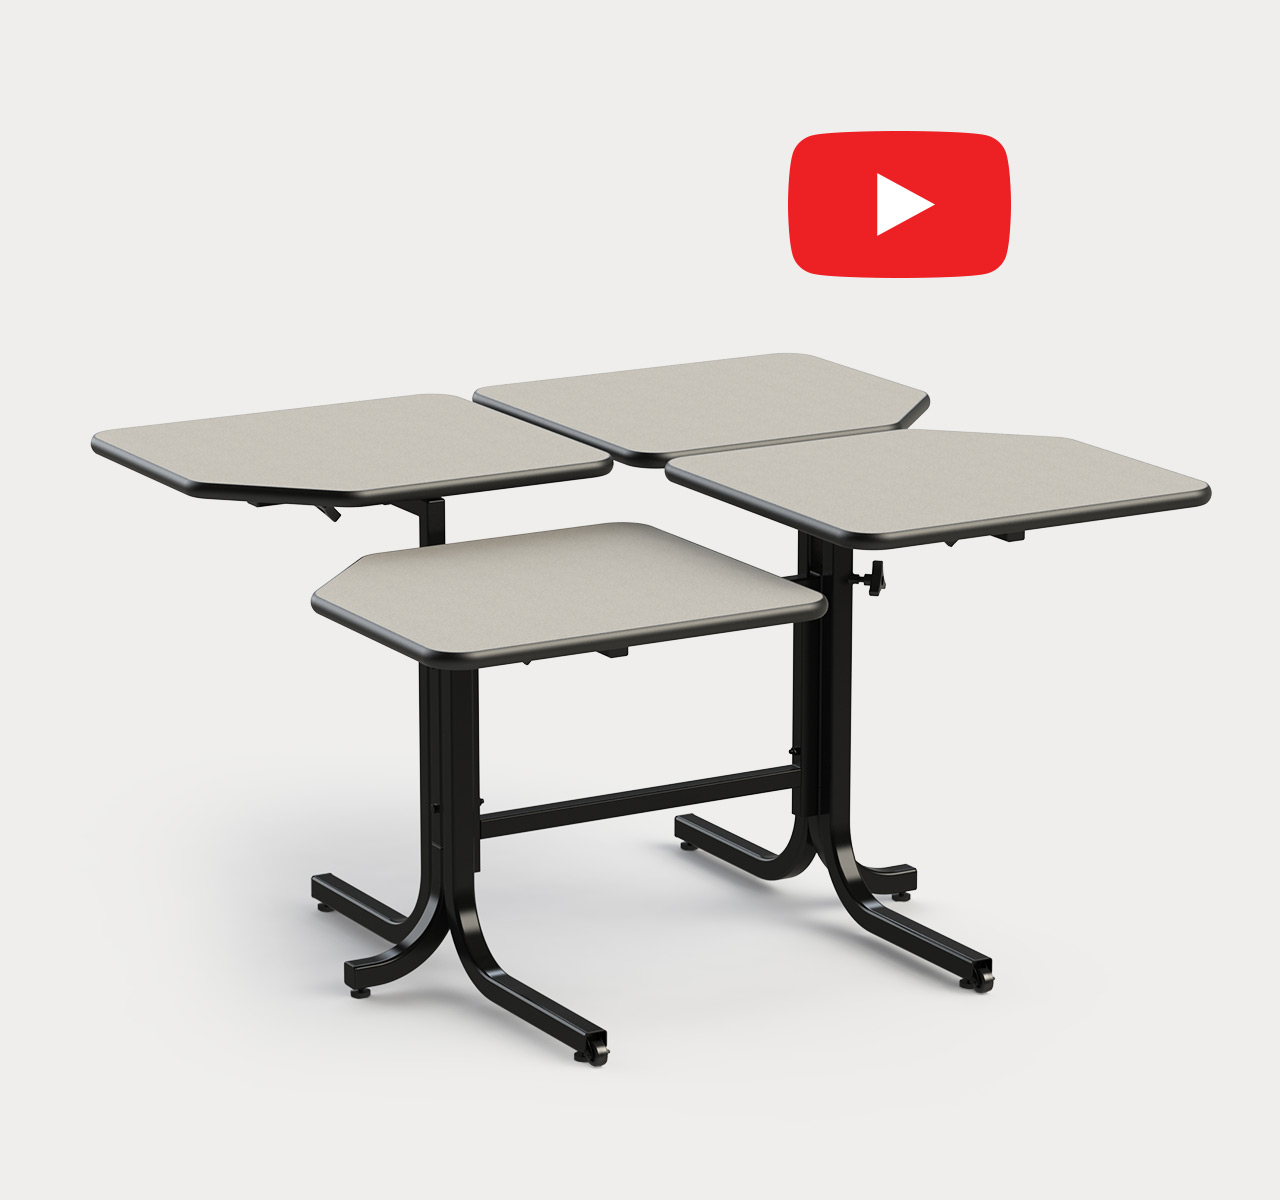 Butterlfy Adjustable Table (4 Seater)